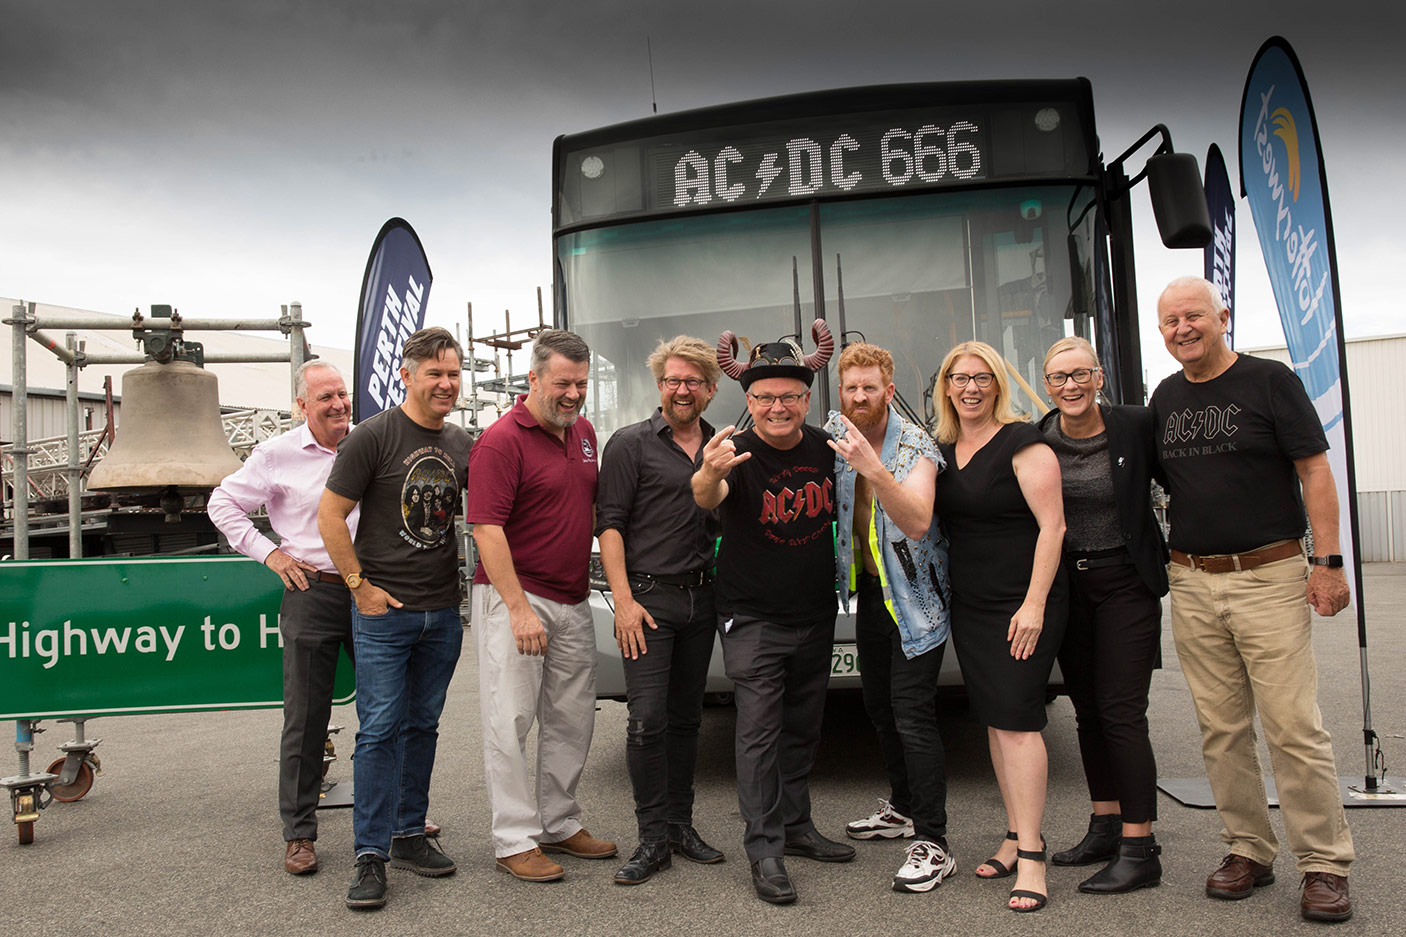 Highway to Hell: Minister David Templeman and Minister Rita Saffioti with organisers of the Highway to Hell in front of a Transperth Bus